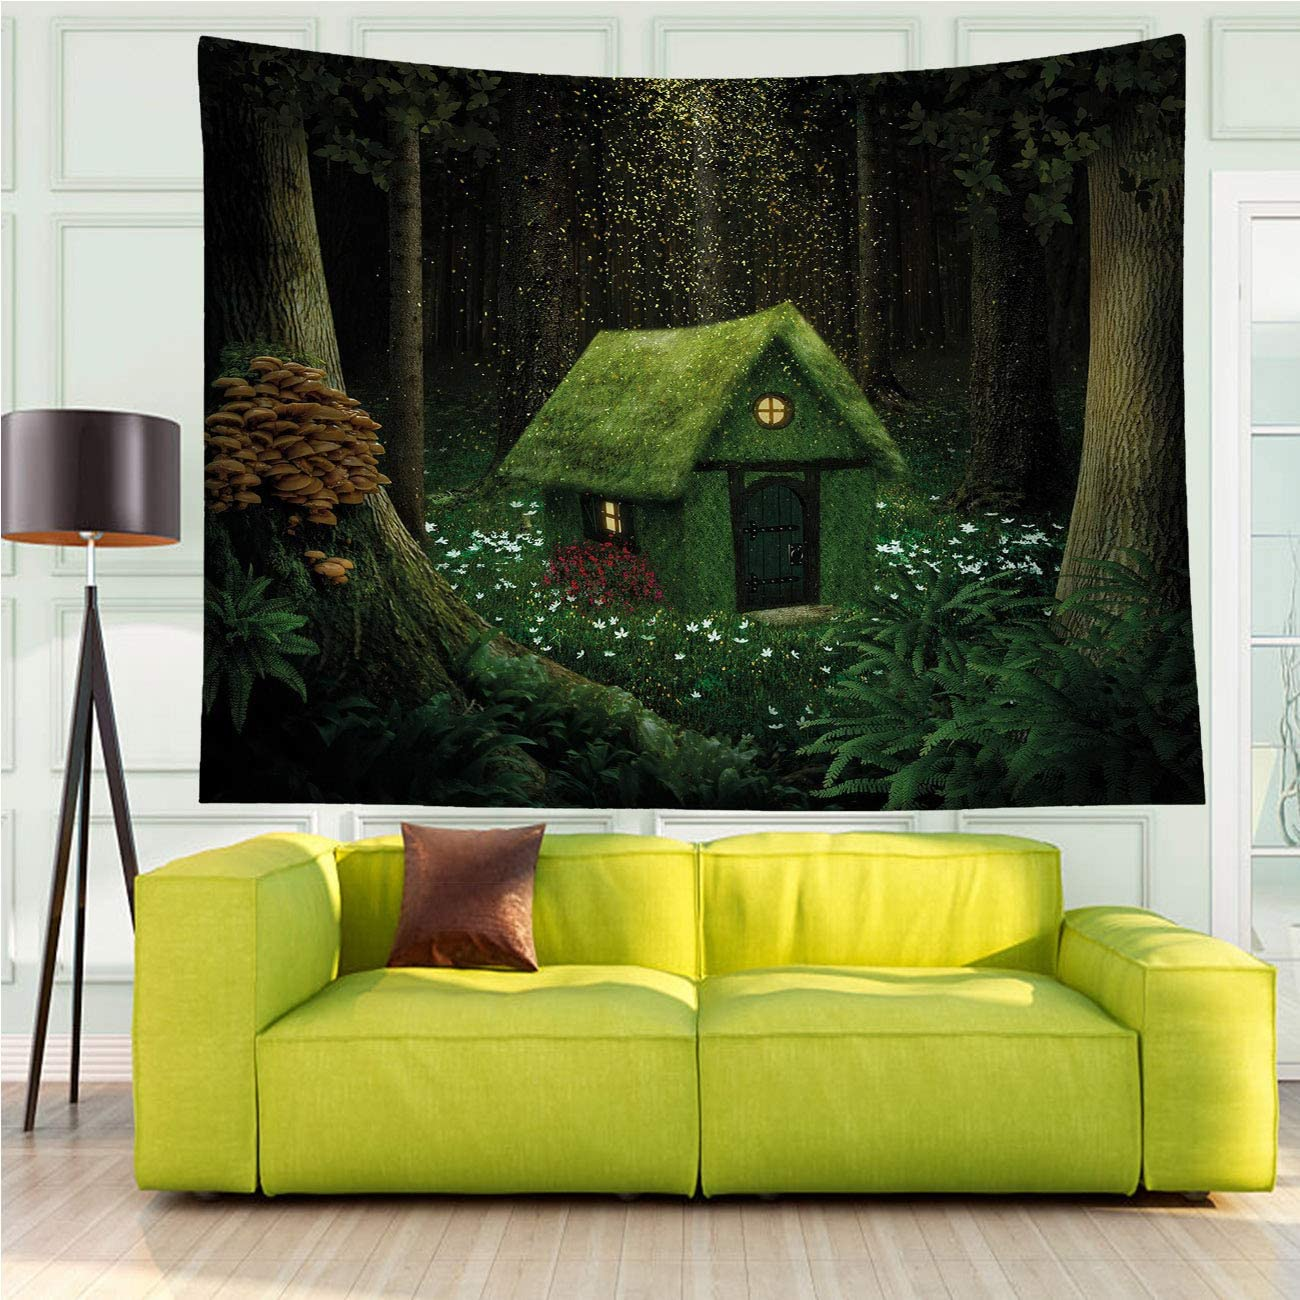 Tapestry Wall Hanging Versatile,Fantasy Surreal Little Forest House Moss Magic Forest Elves Green,Tapestry for Living Room Bedroom Dorm Home Decor,60x40 in